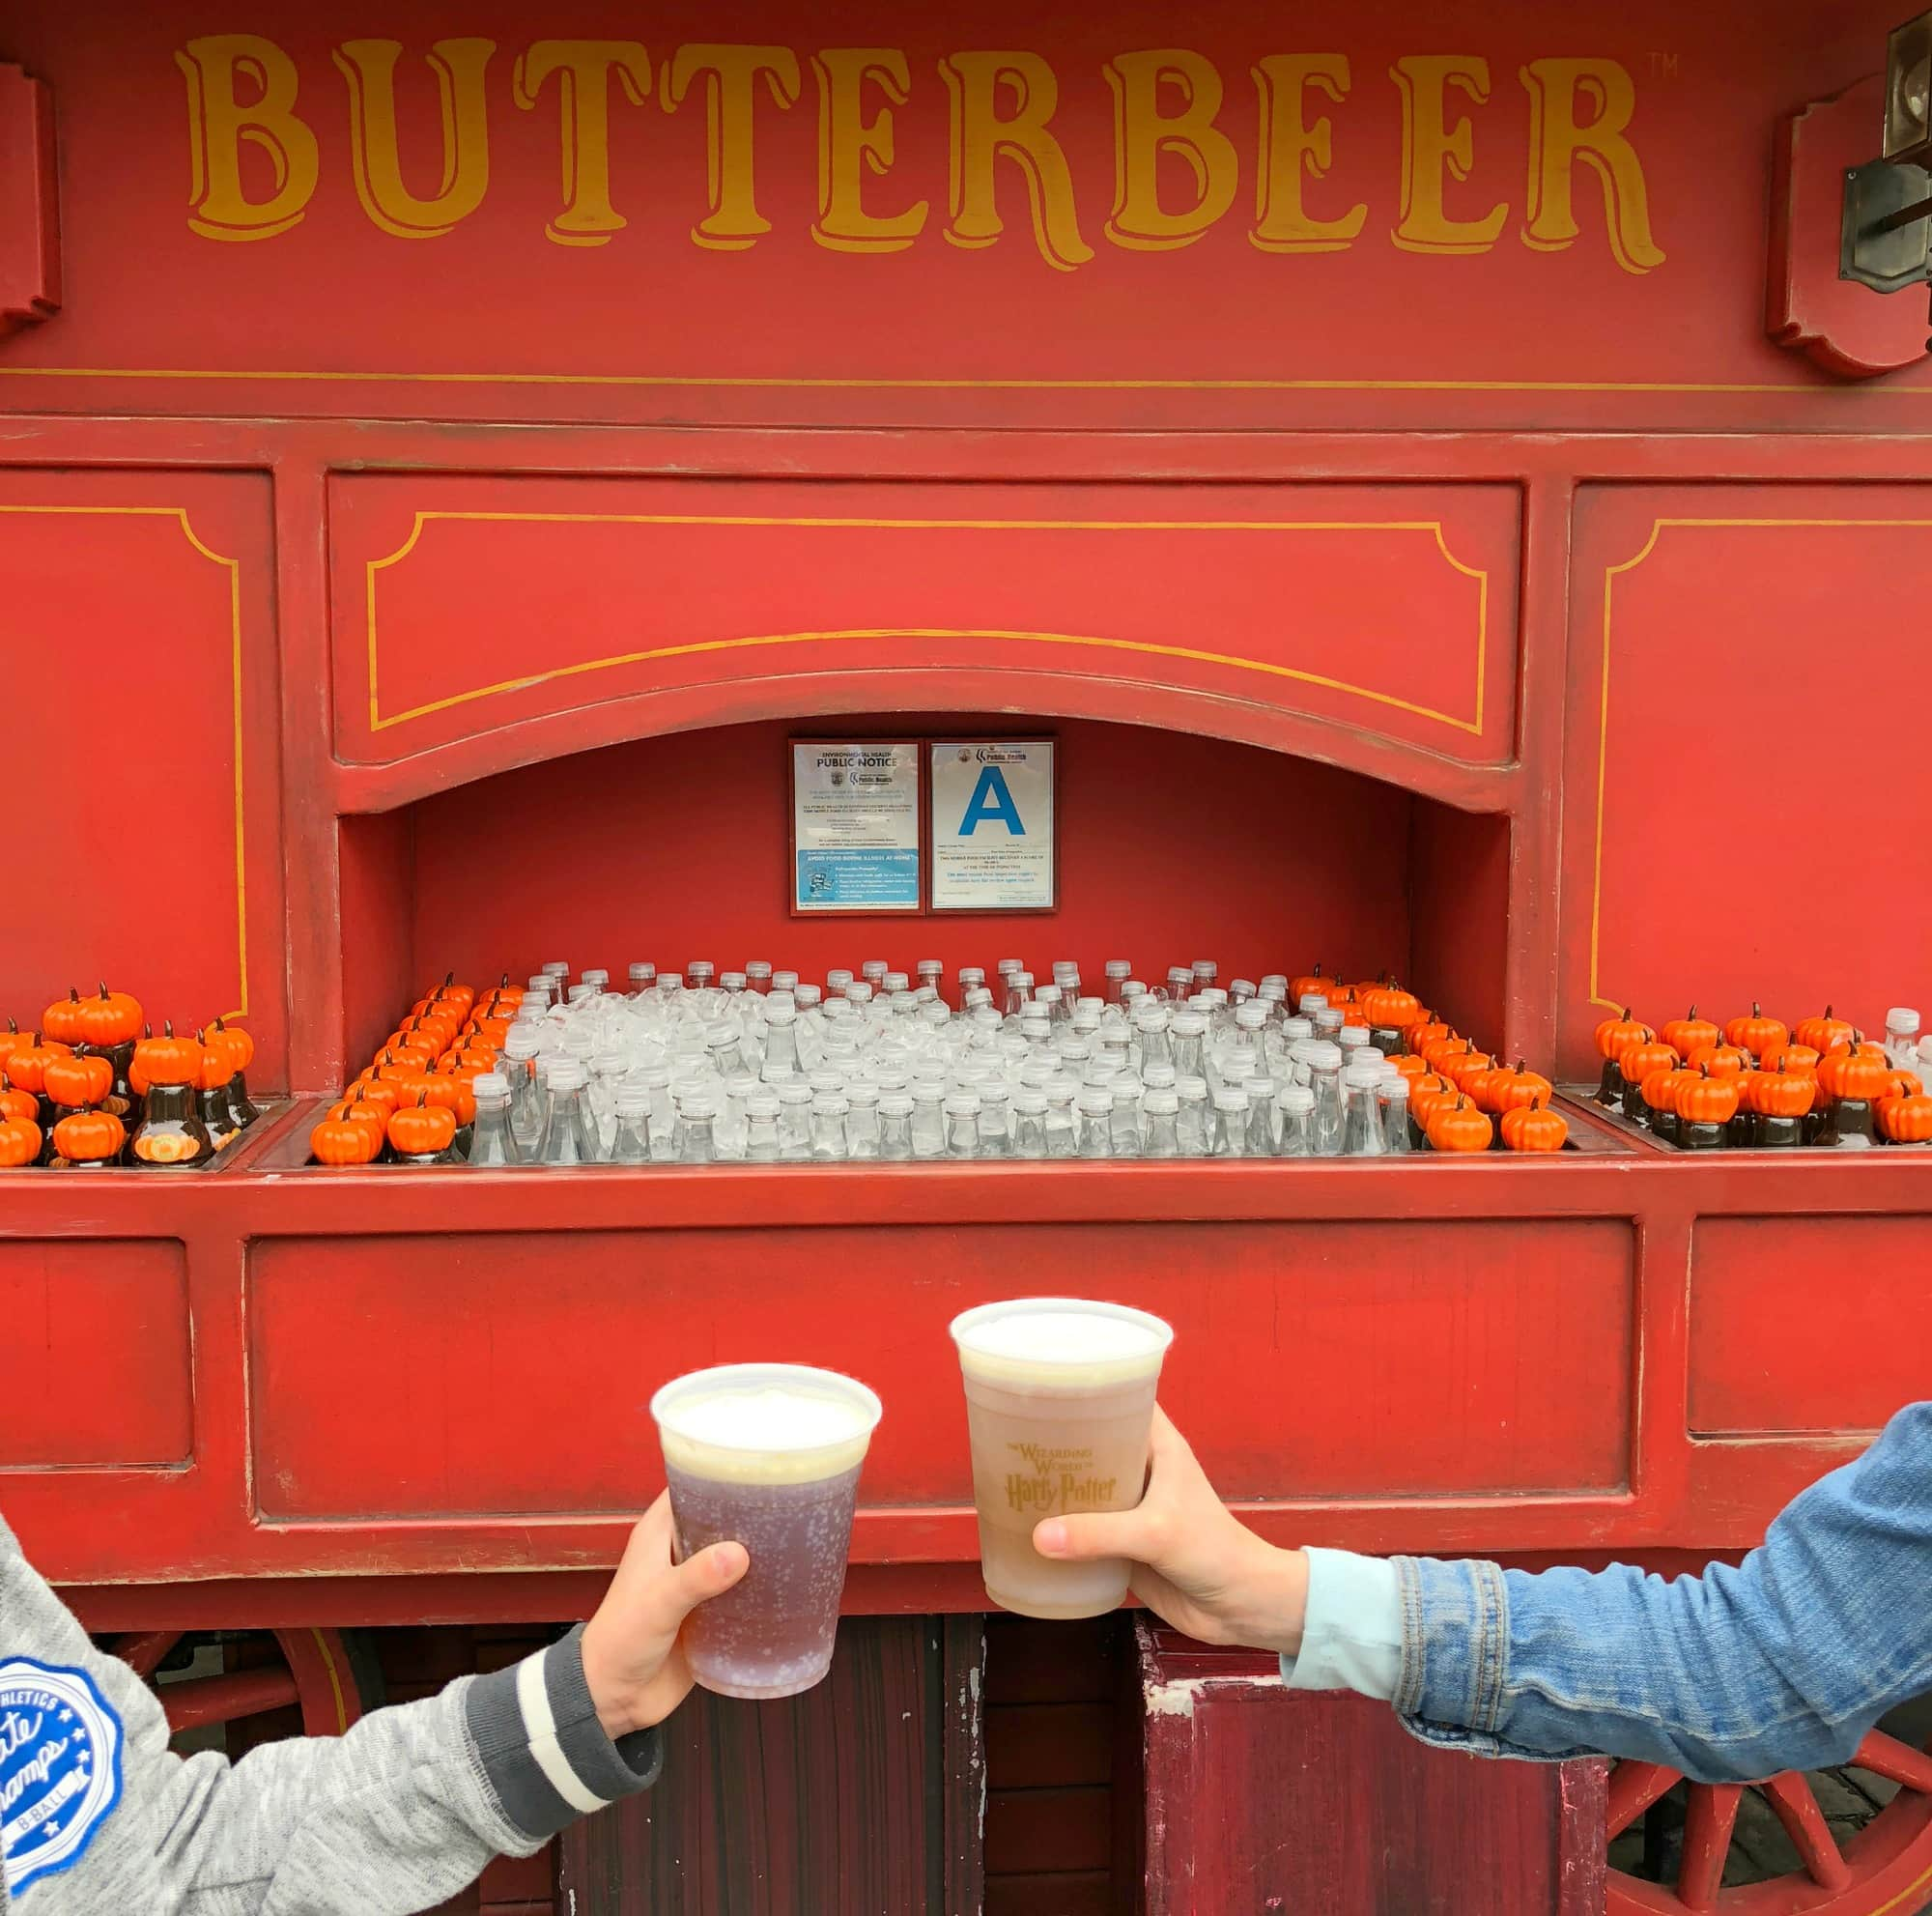 Which butter beer do you think you'd like best, bubbly or frozen?